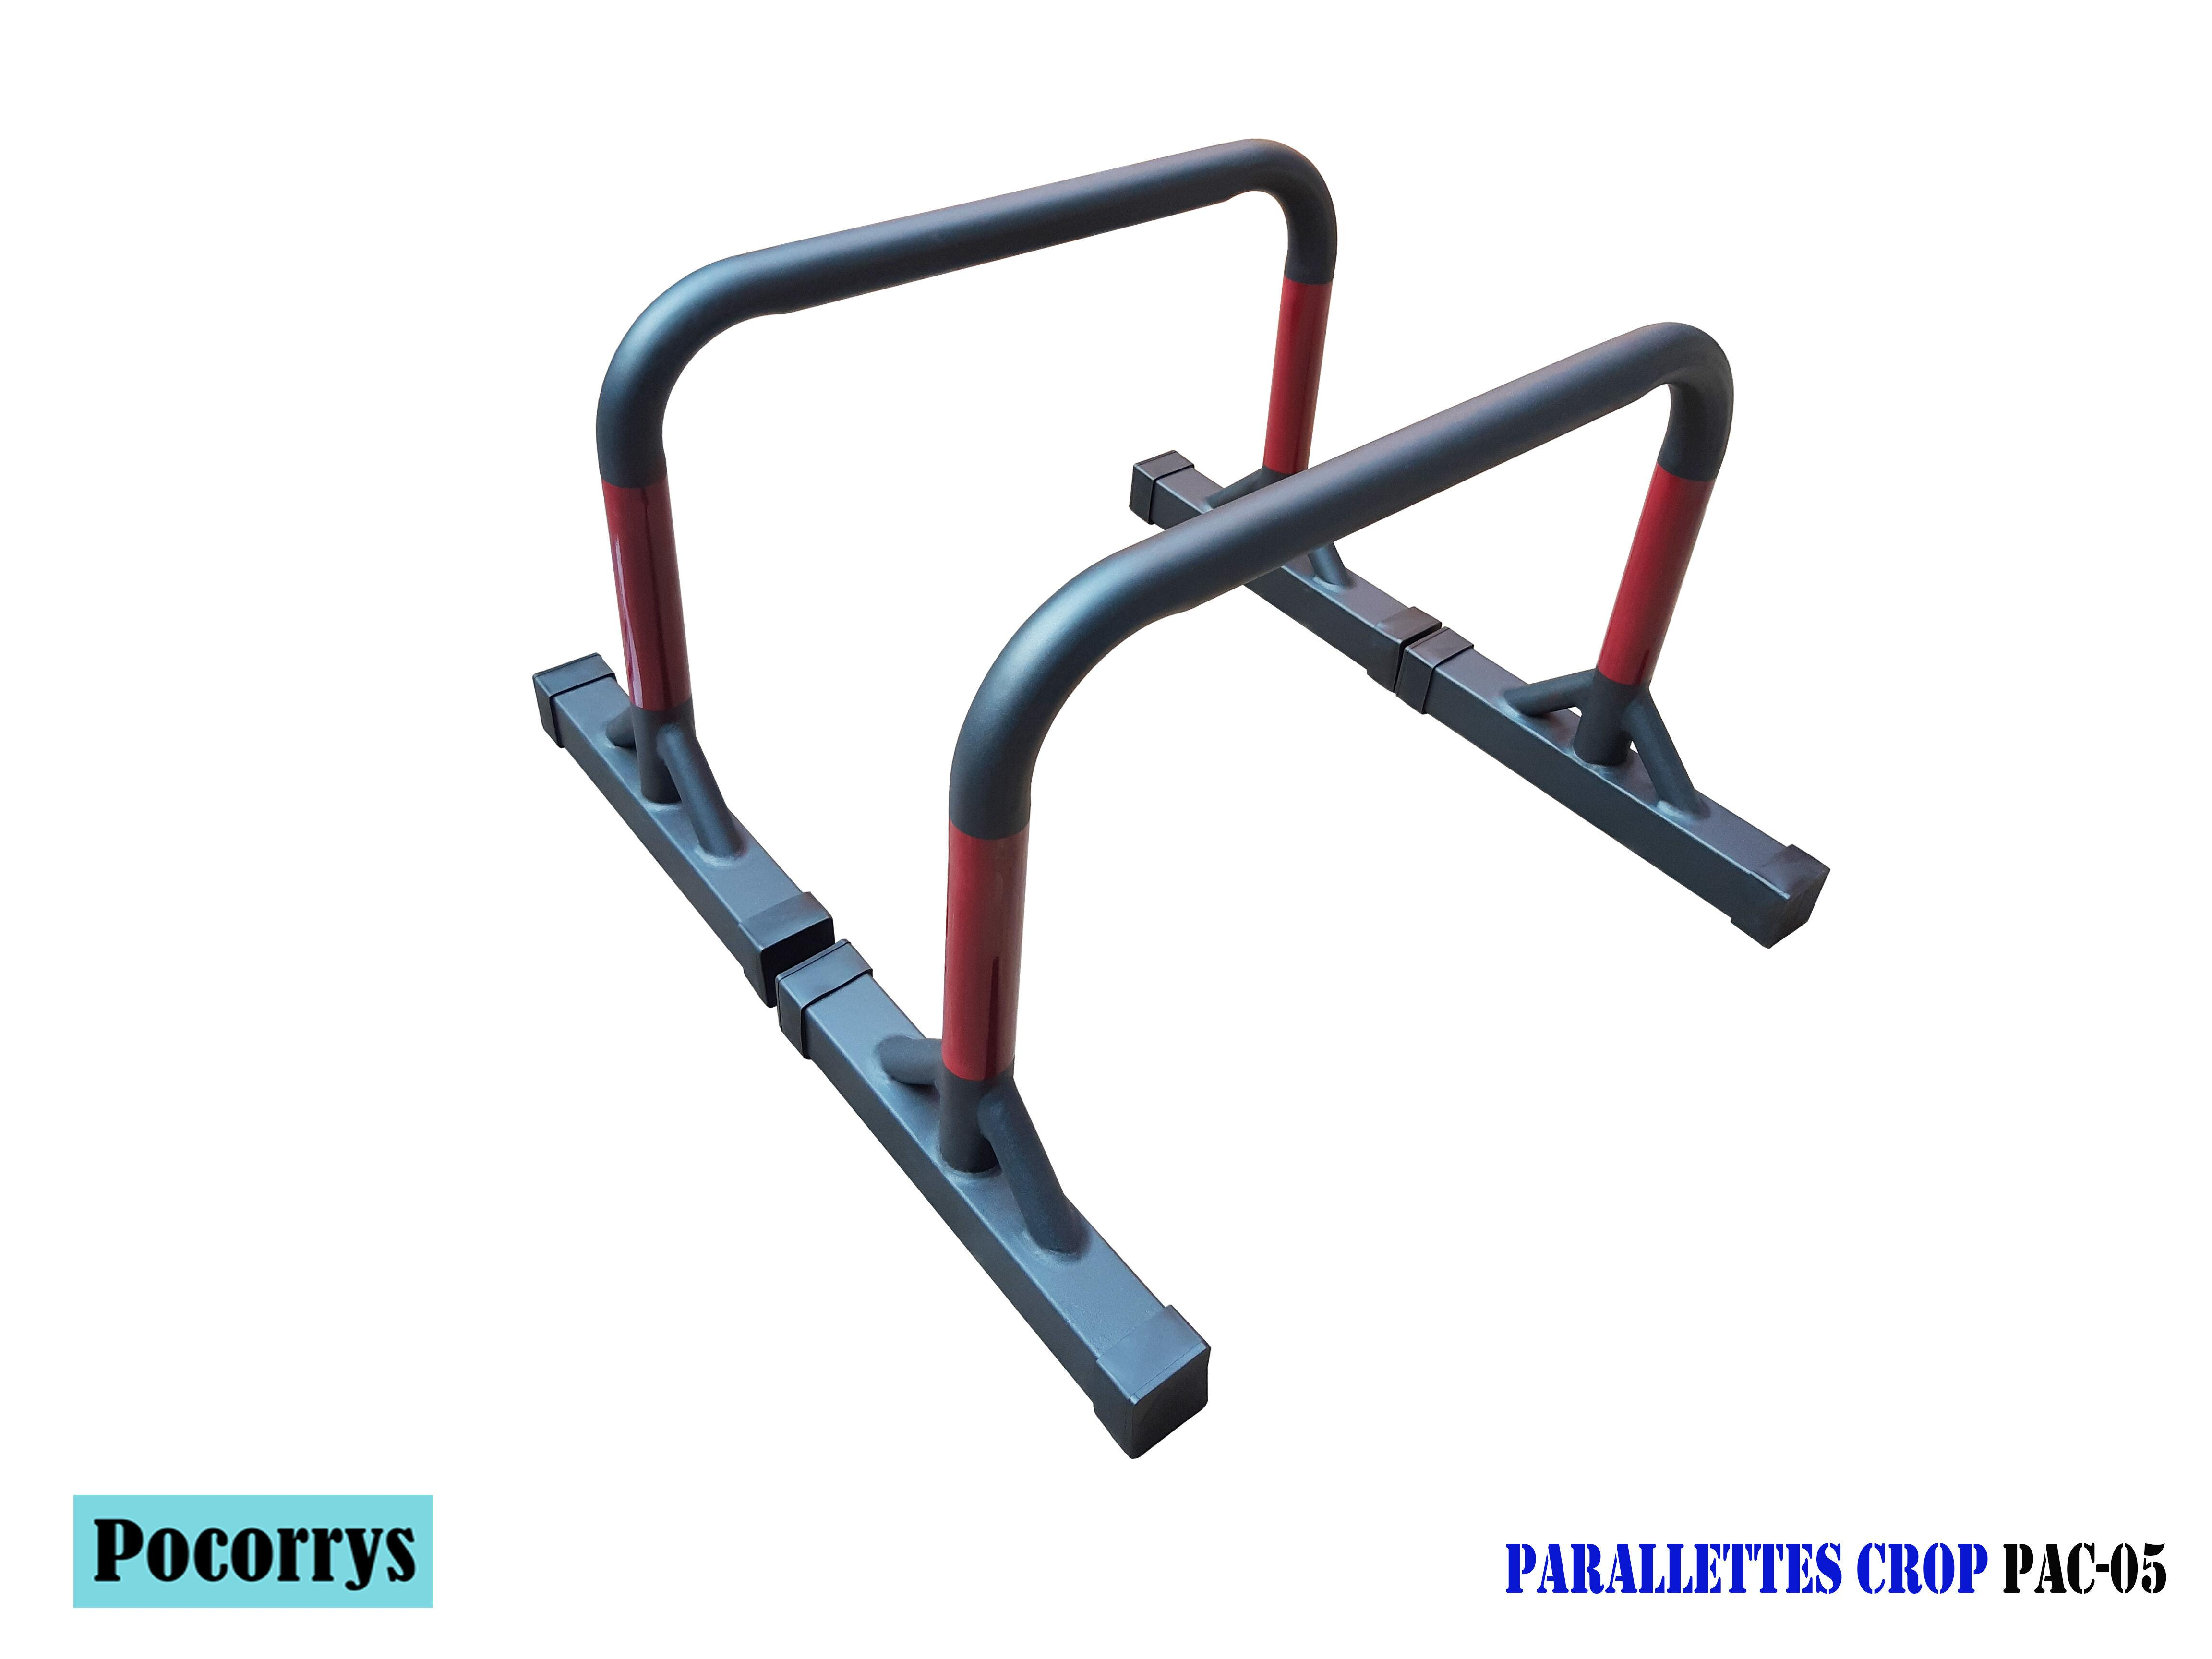 Parallettes Crop cao 45cm Xà kép mini Pocorrys PAC-05 (Street workout, Calisthenics, Gym)